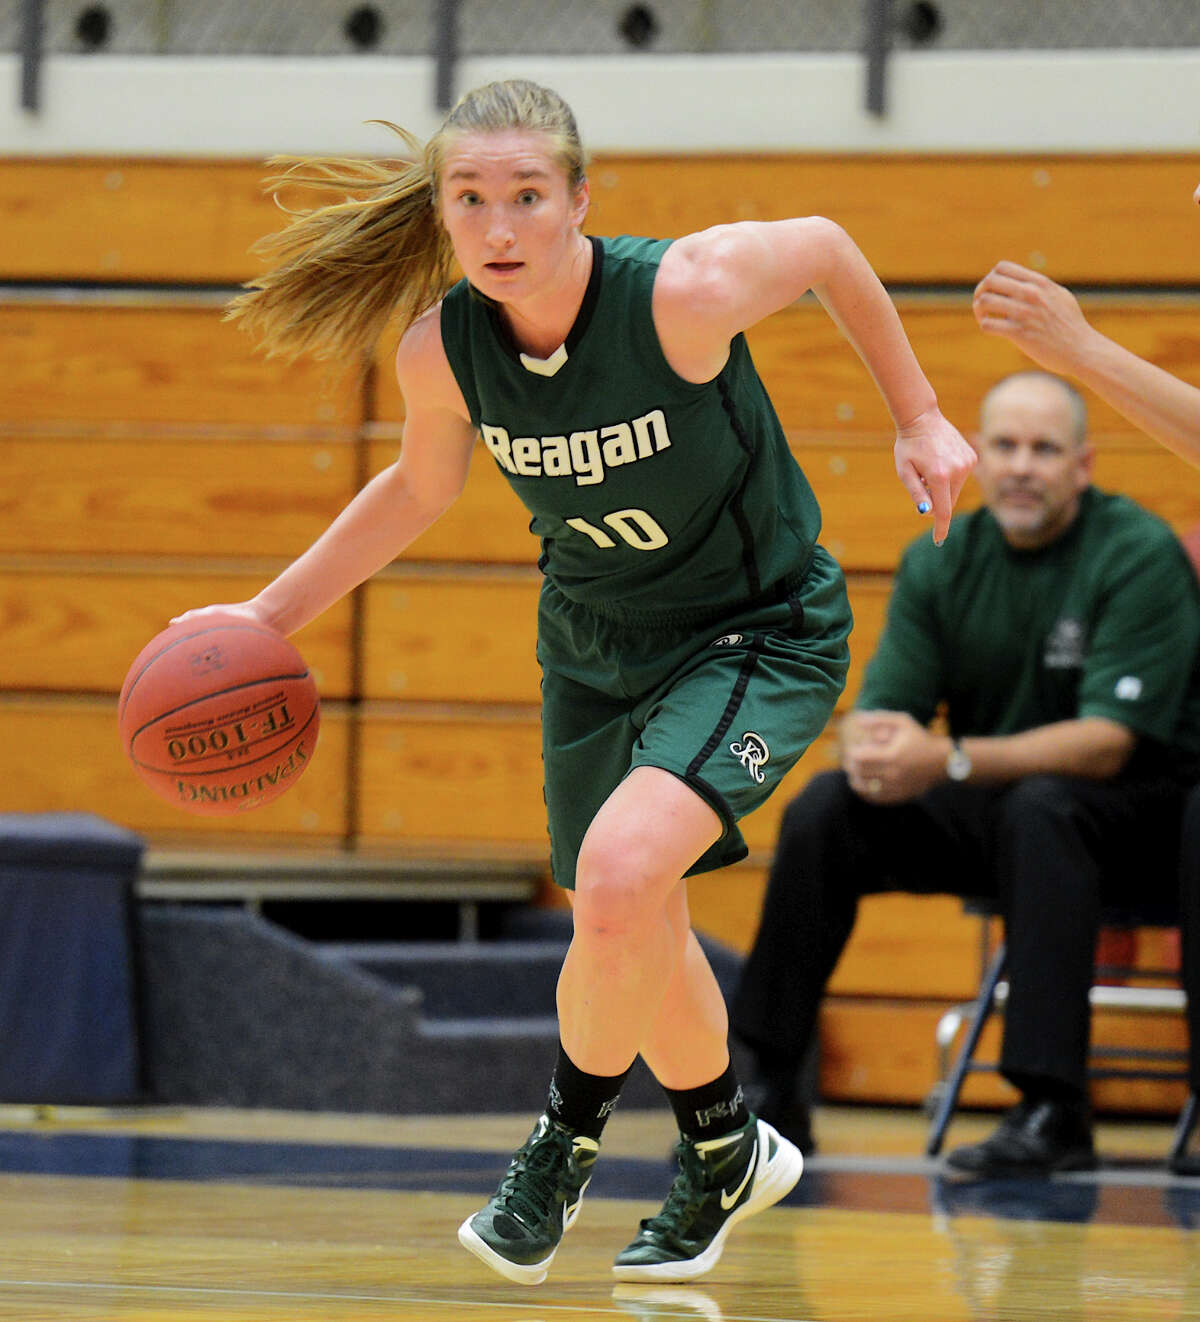 Reagan's Wendy Knight during a girls non-district basketball game between the Brennan Bears and the Reagan Rattlers at Paul Taylor Field House in San Antonio, Saturday, November 5, 2012. John Albright / Special to the Express-News.